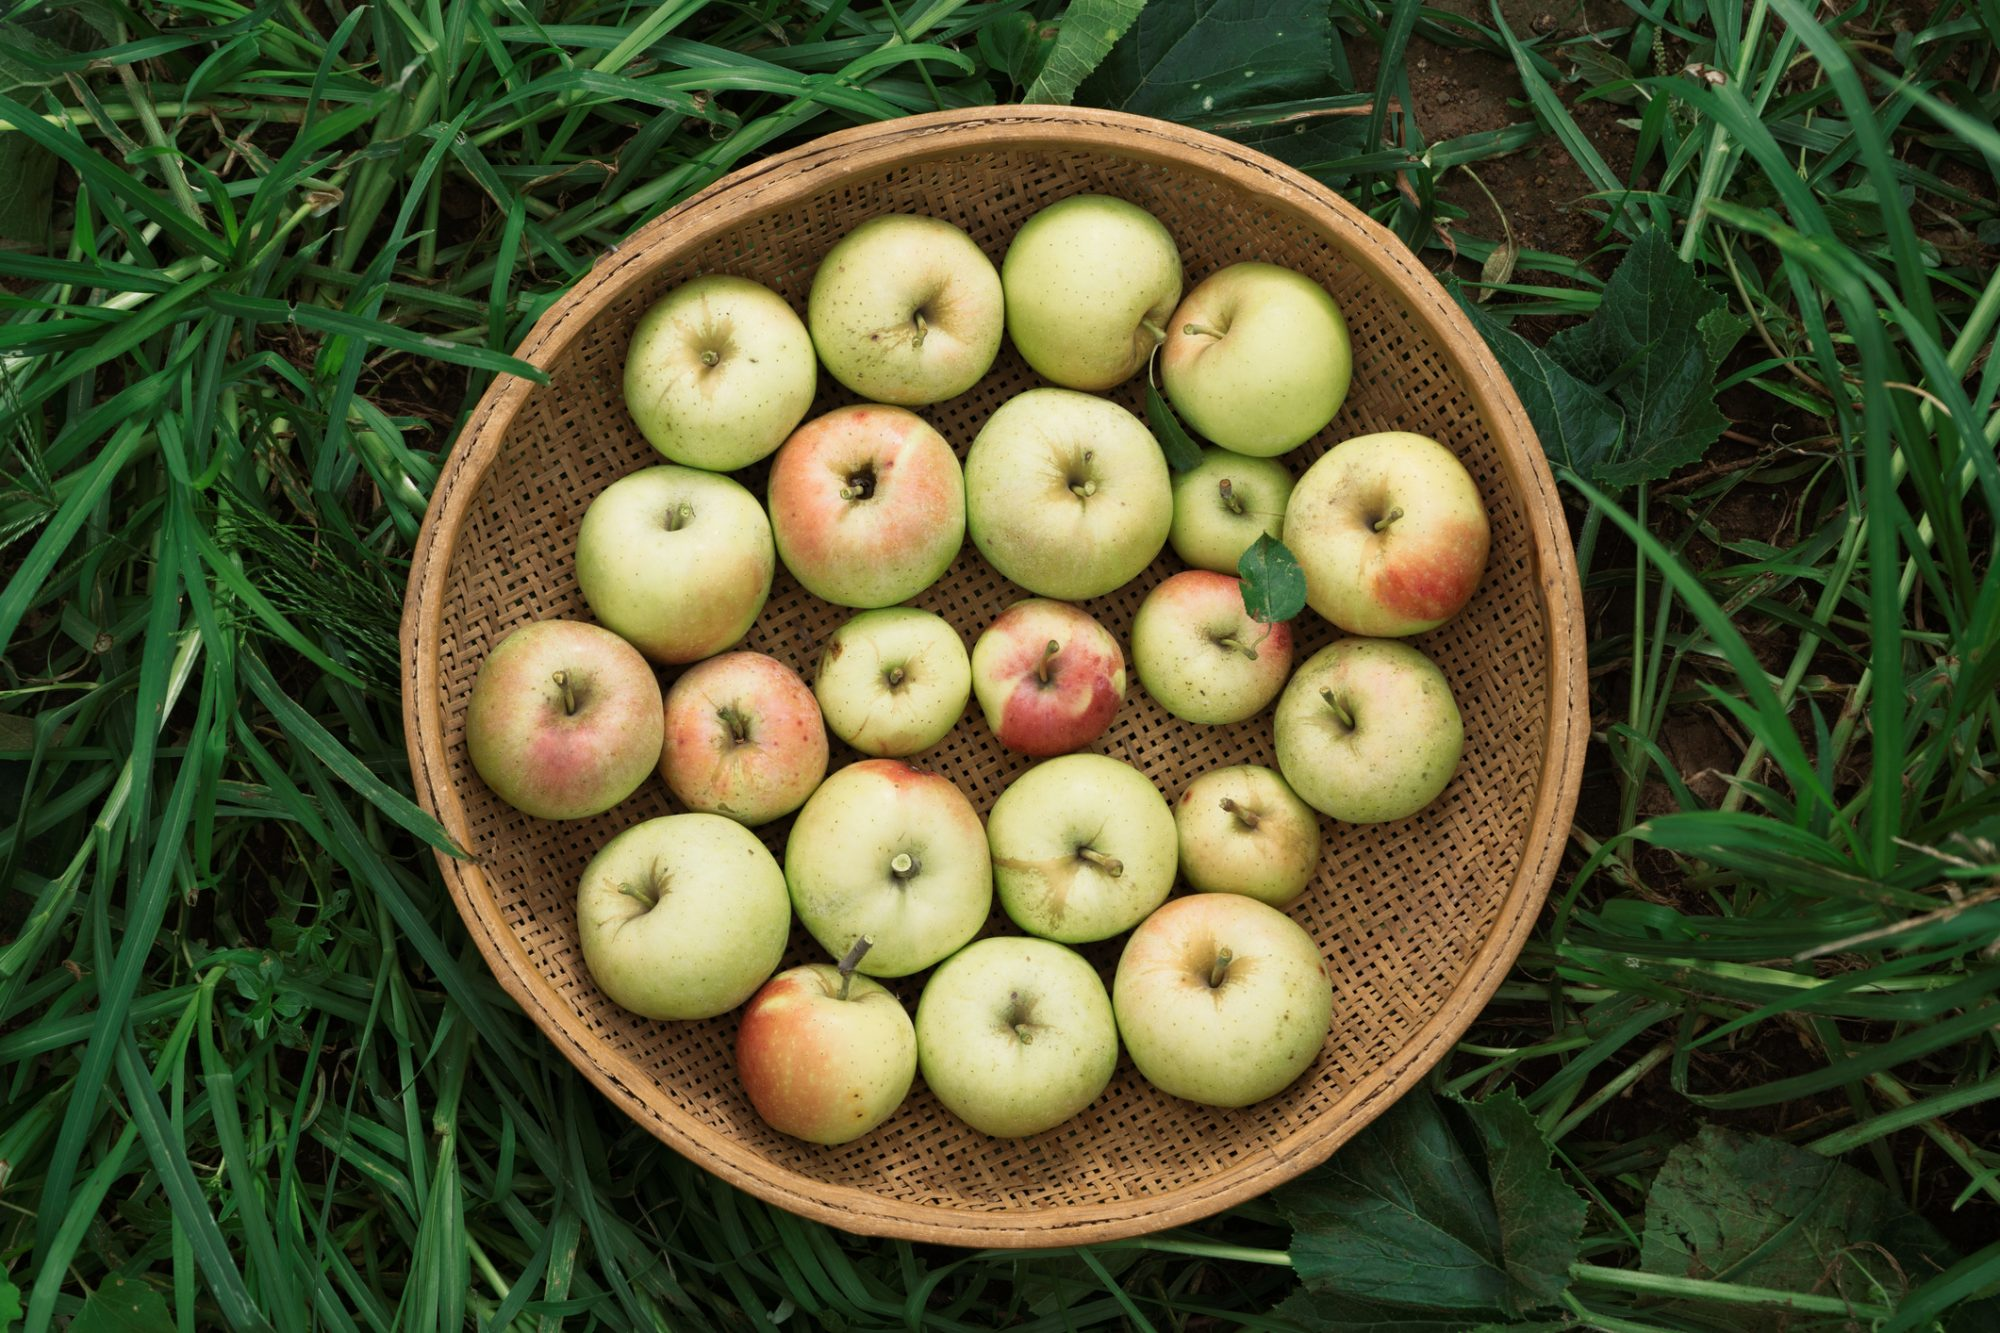 We Tried 19 Different Kinds of Apples and This Is the Best One